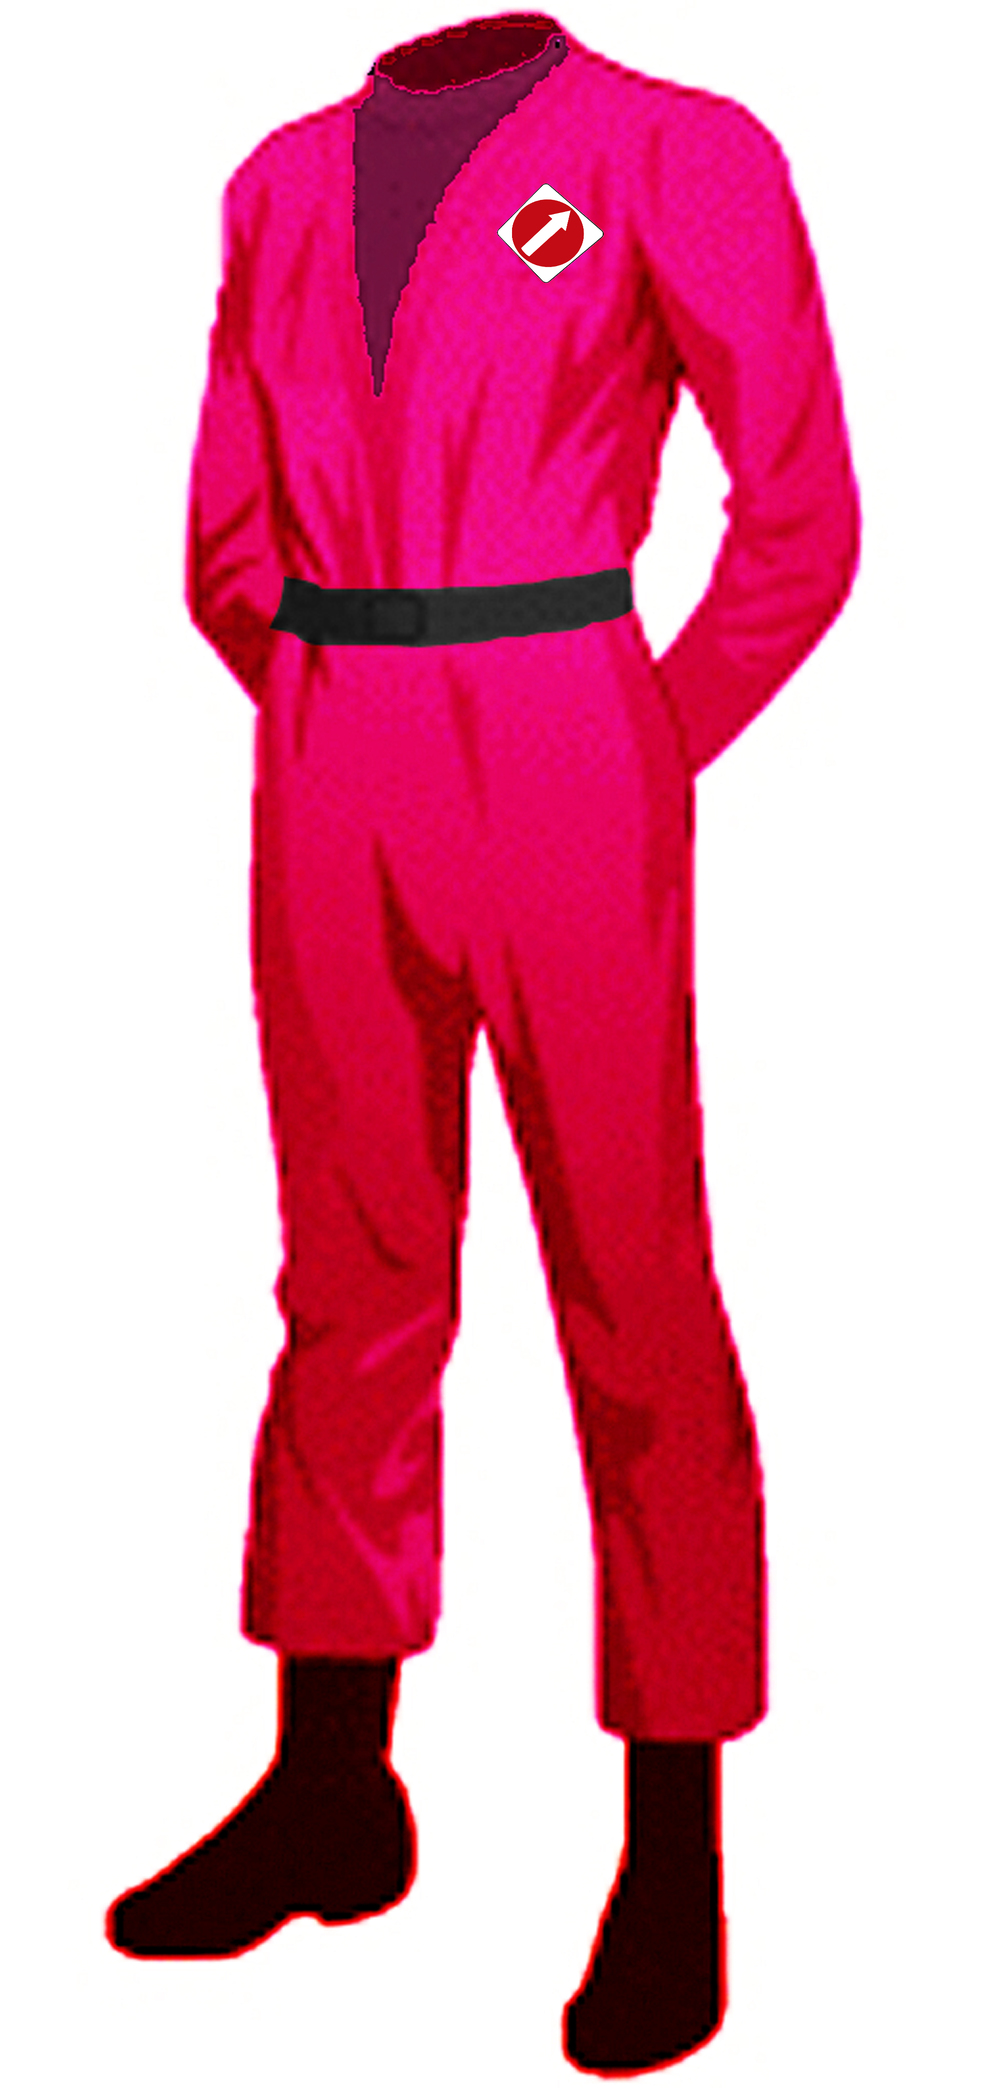 The One Way Redshirt Uniform, yours for one night or forever.